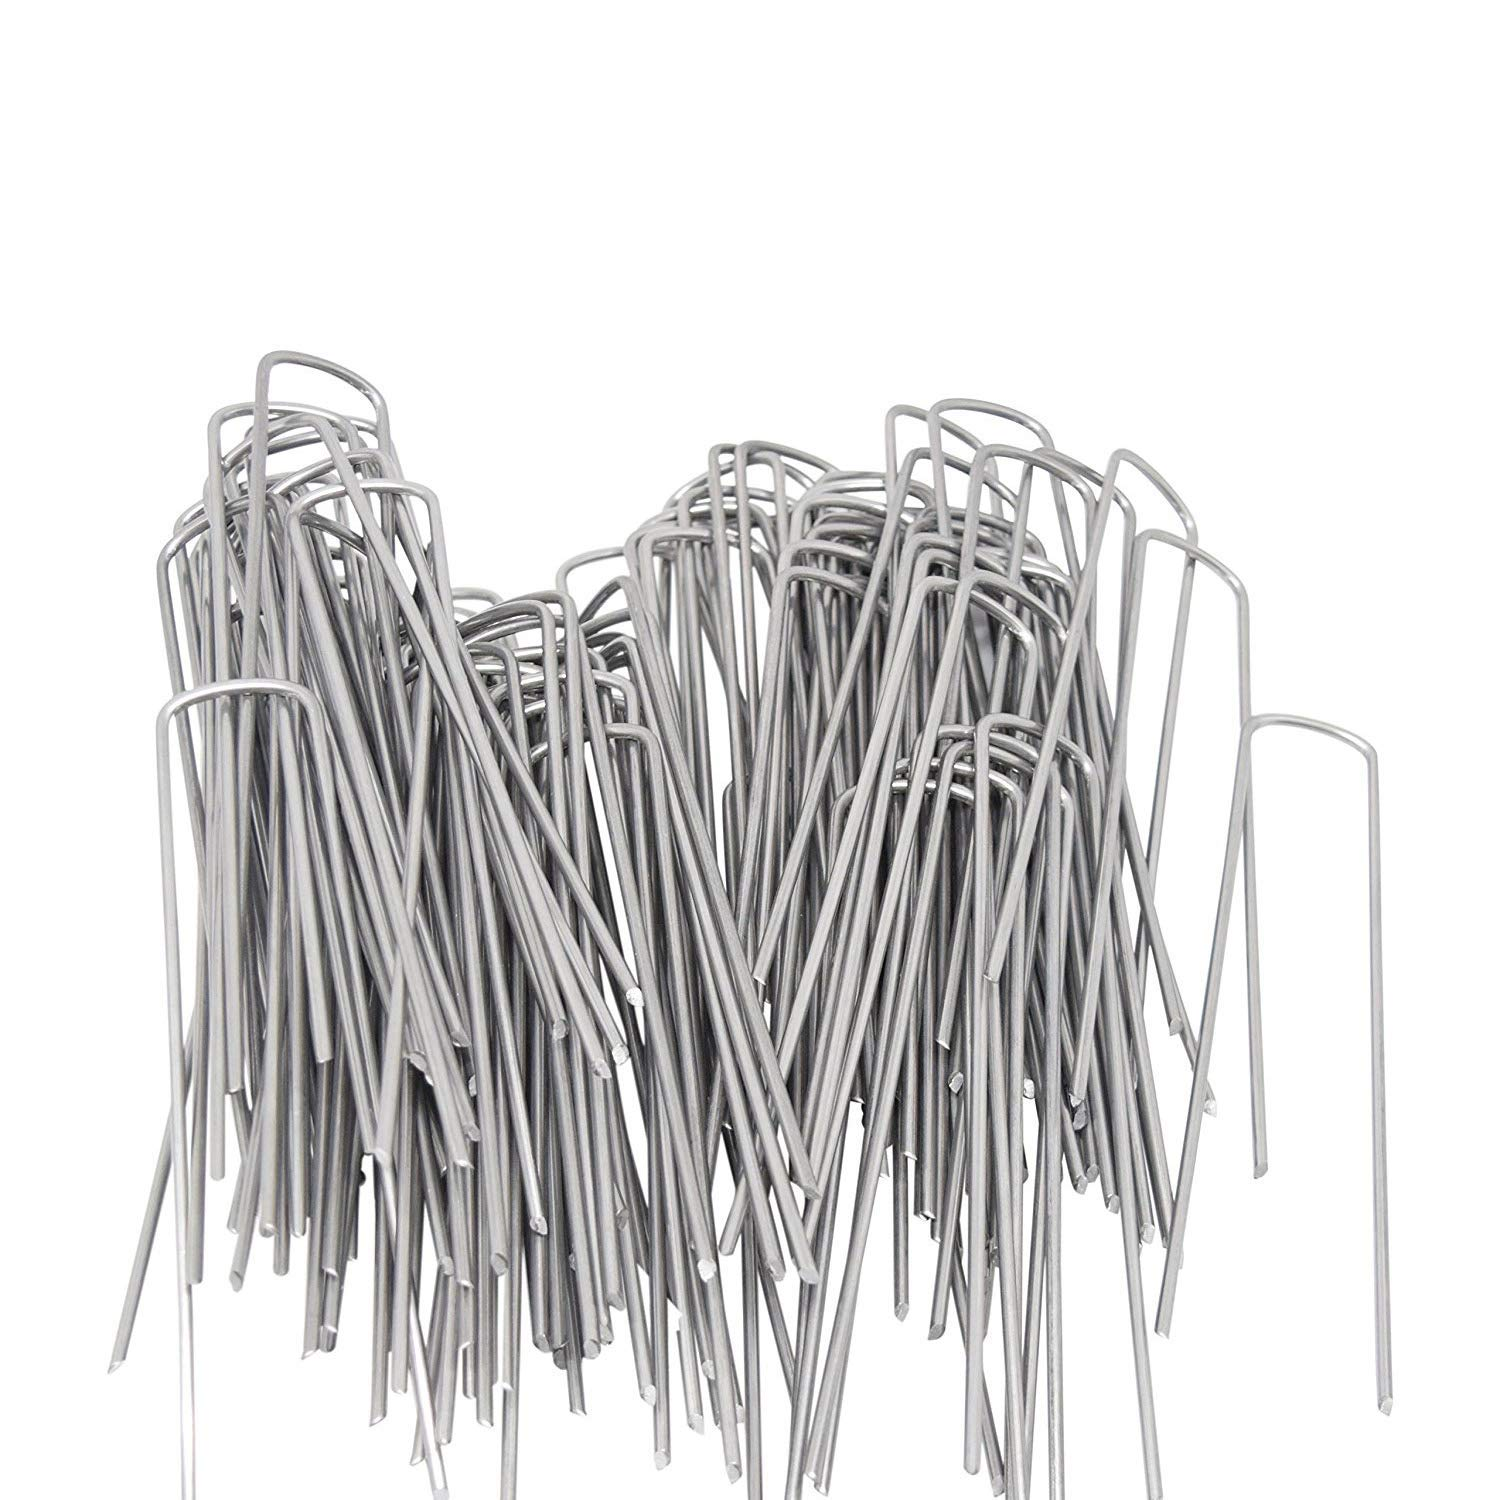 40Pcs 9inch Extra-Long U-Shaped Garden Securing Pegs,Anti-Rust Garden Stake with 30 Cable Ties for Dog Fences, Irrigation Hoses, Ground Sheets and Fleece,etc